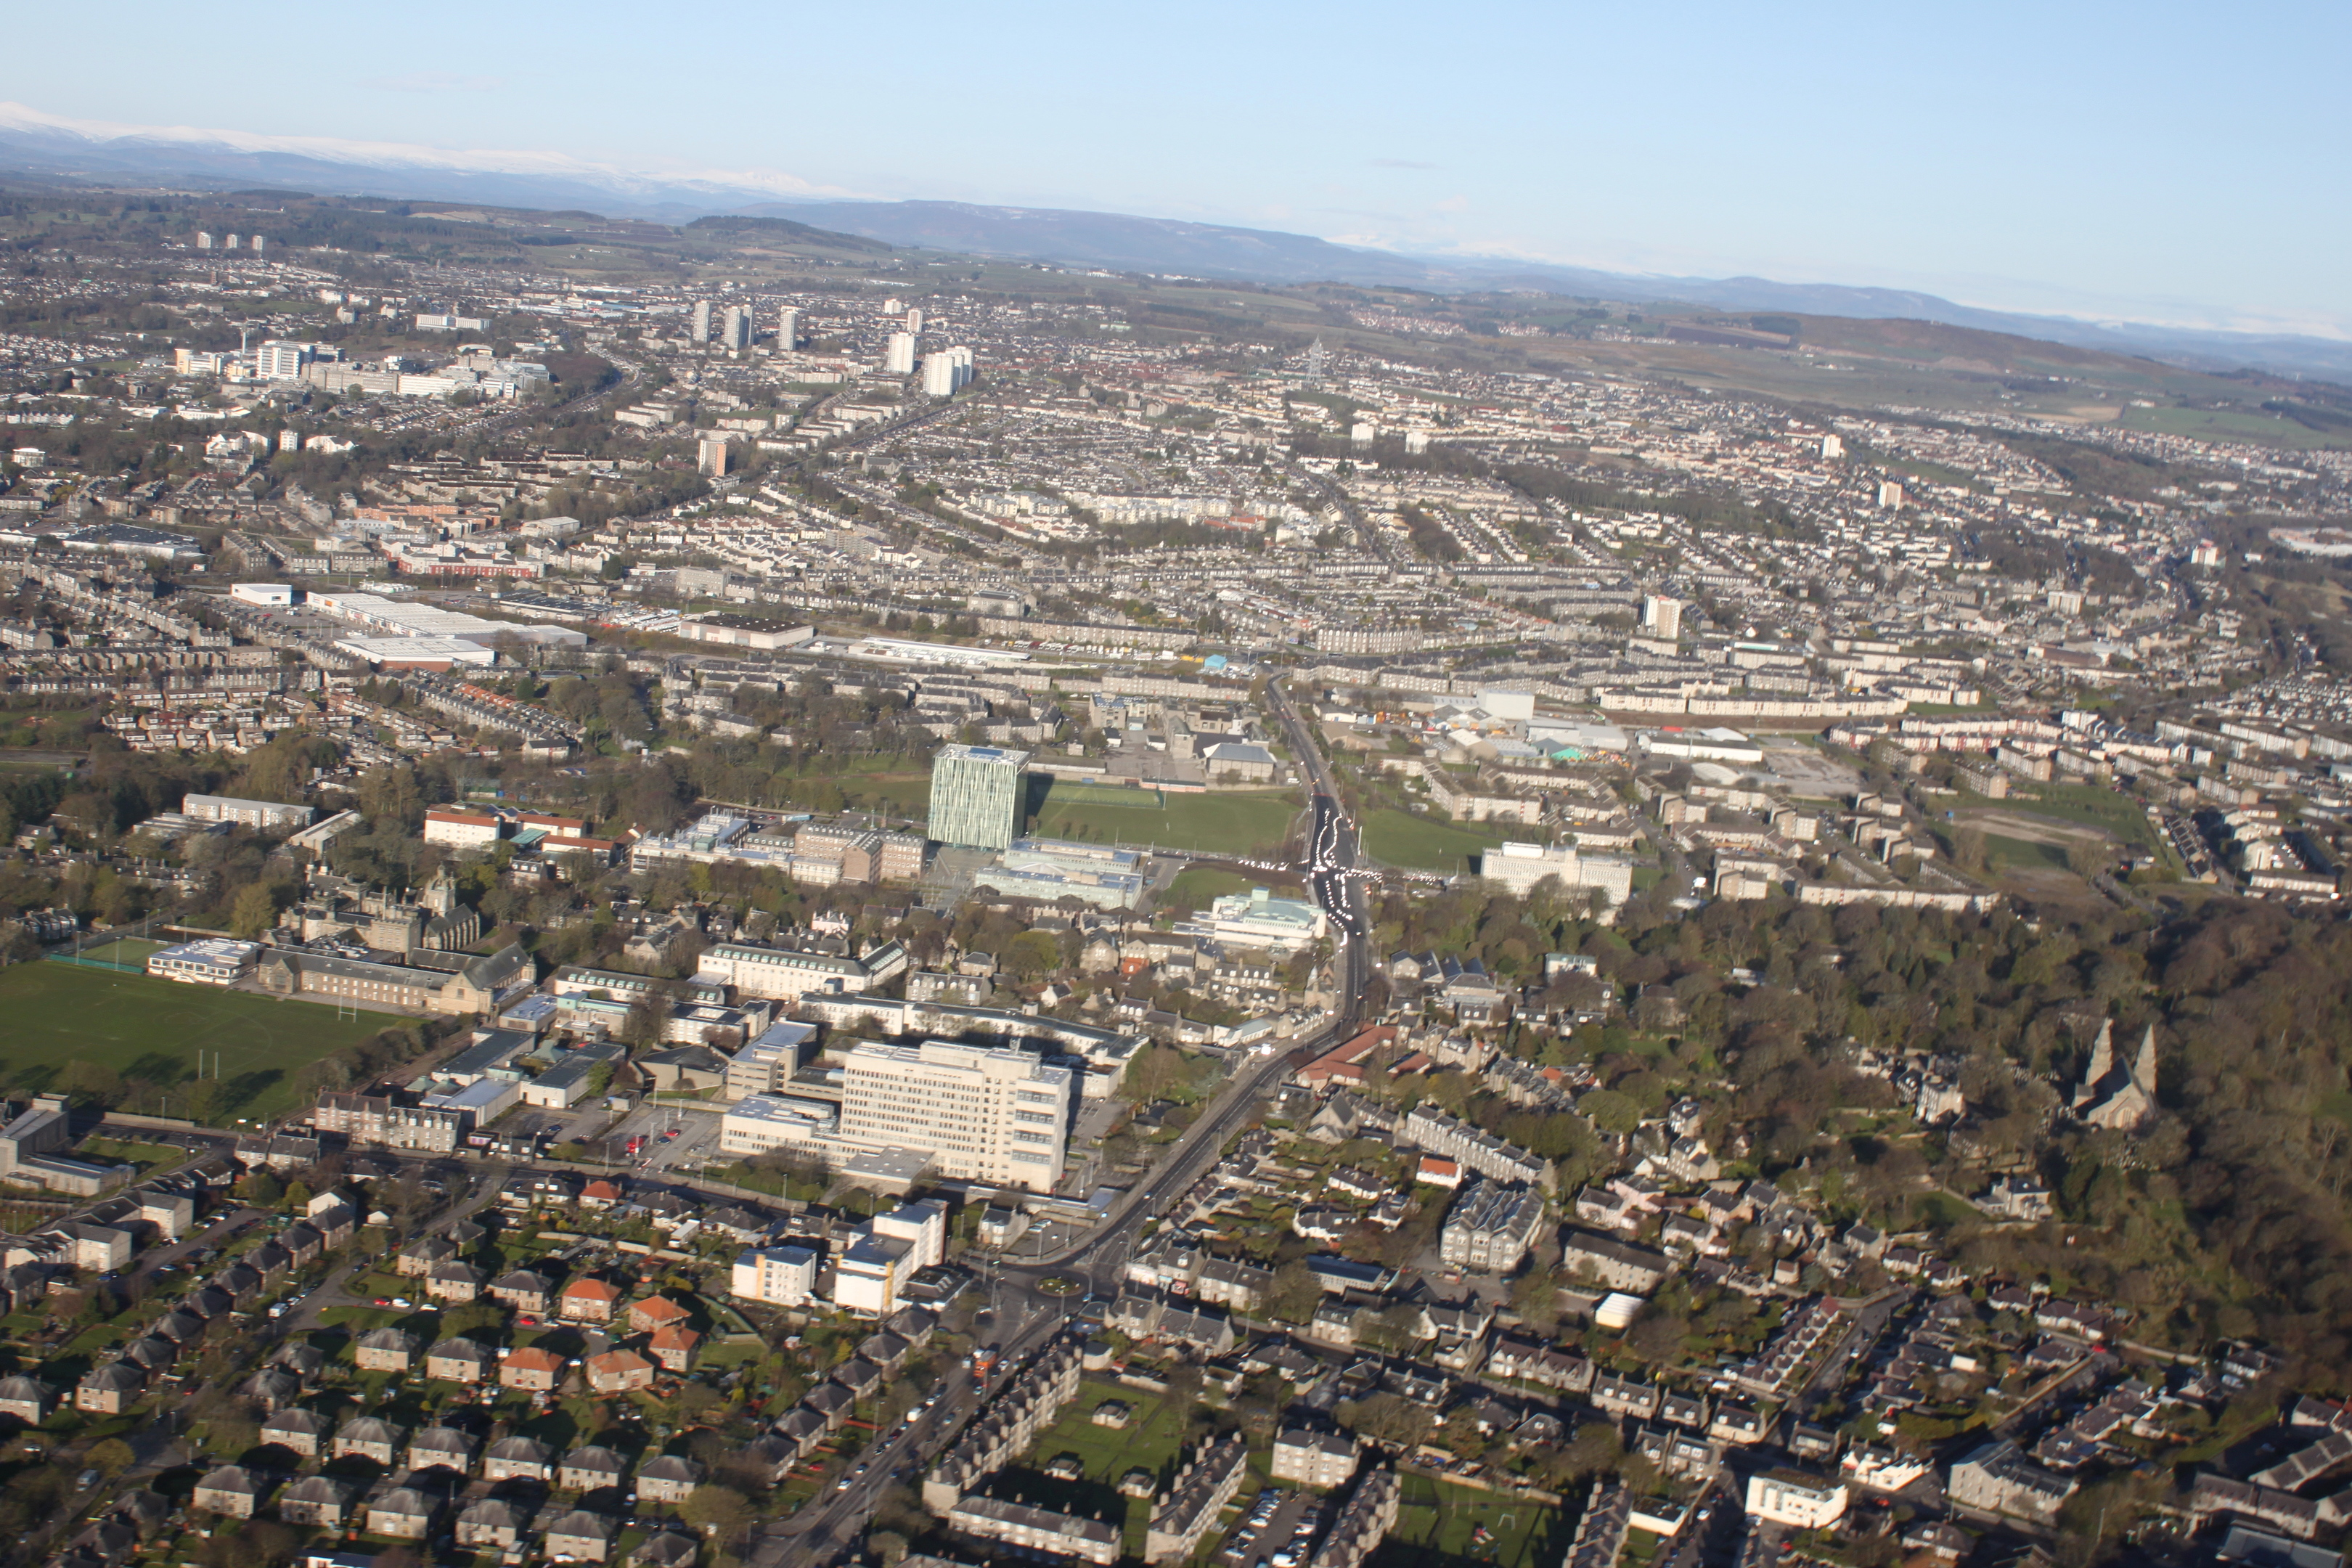 A cityscape of Aberdeen looking West